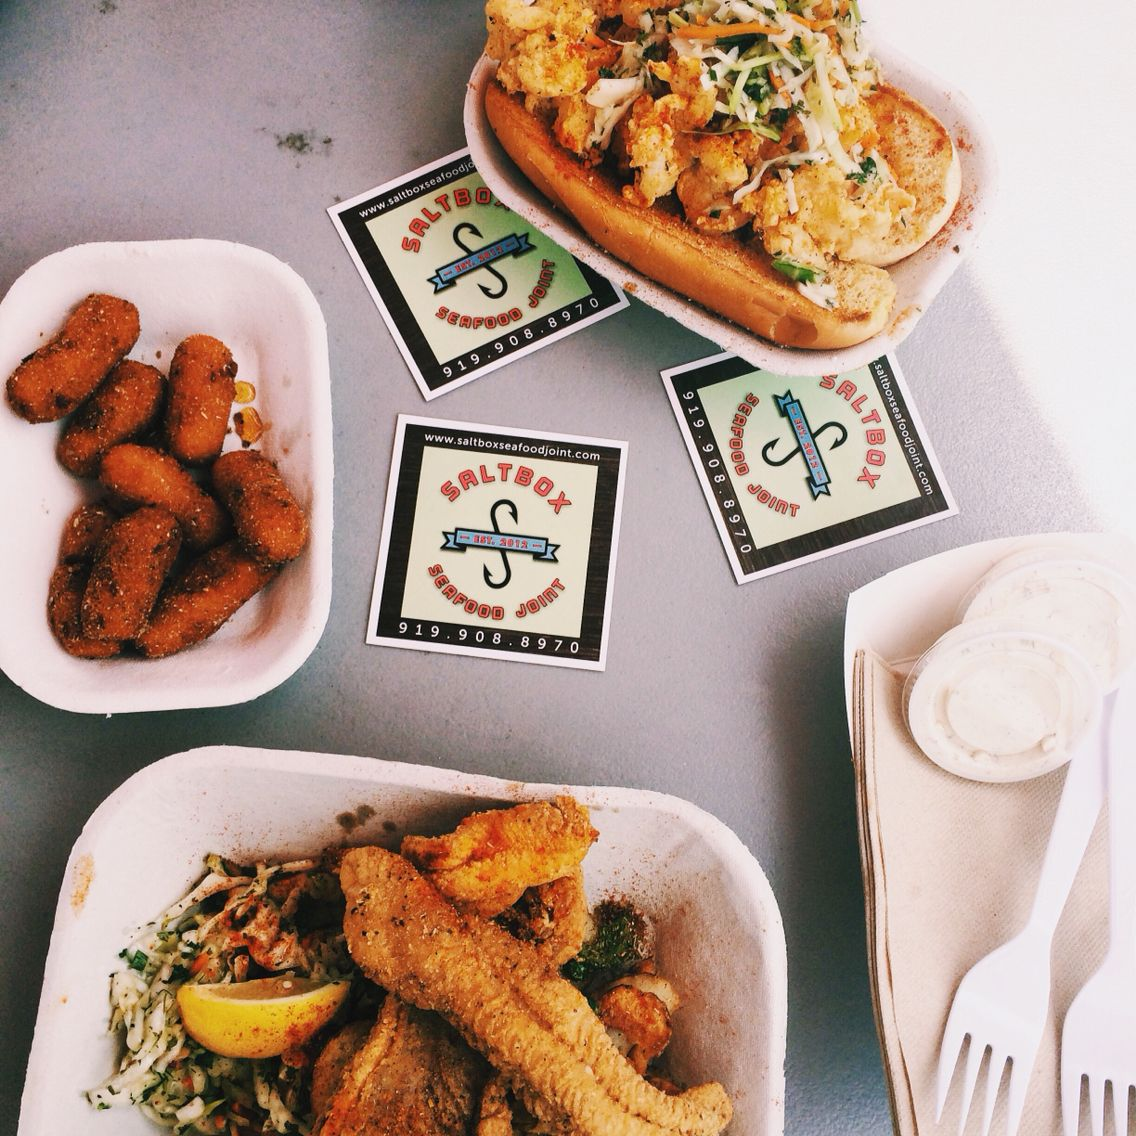 The Salt Box Seafood Joint In Durham Nc Places To Eat Pinterest